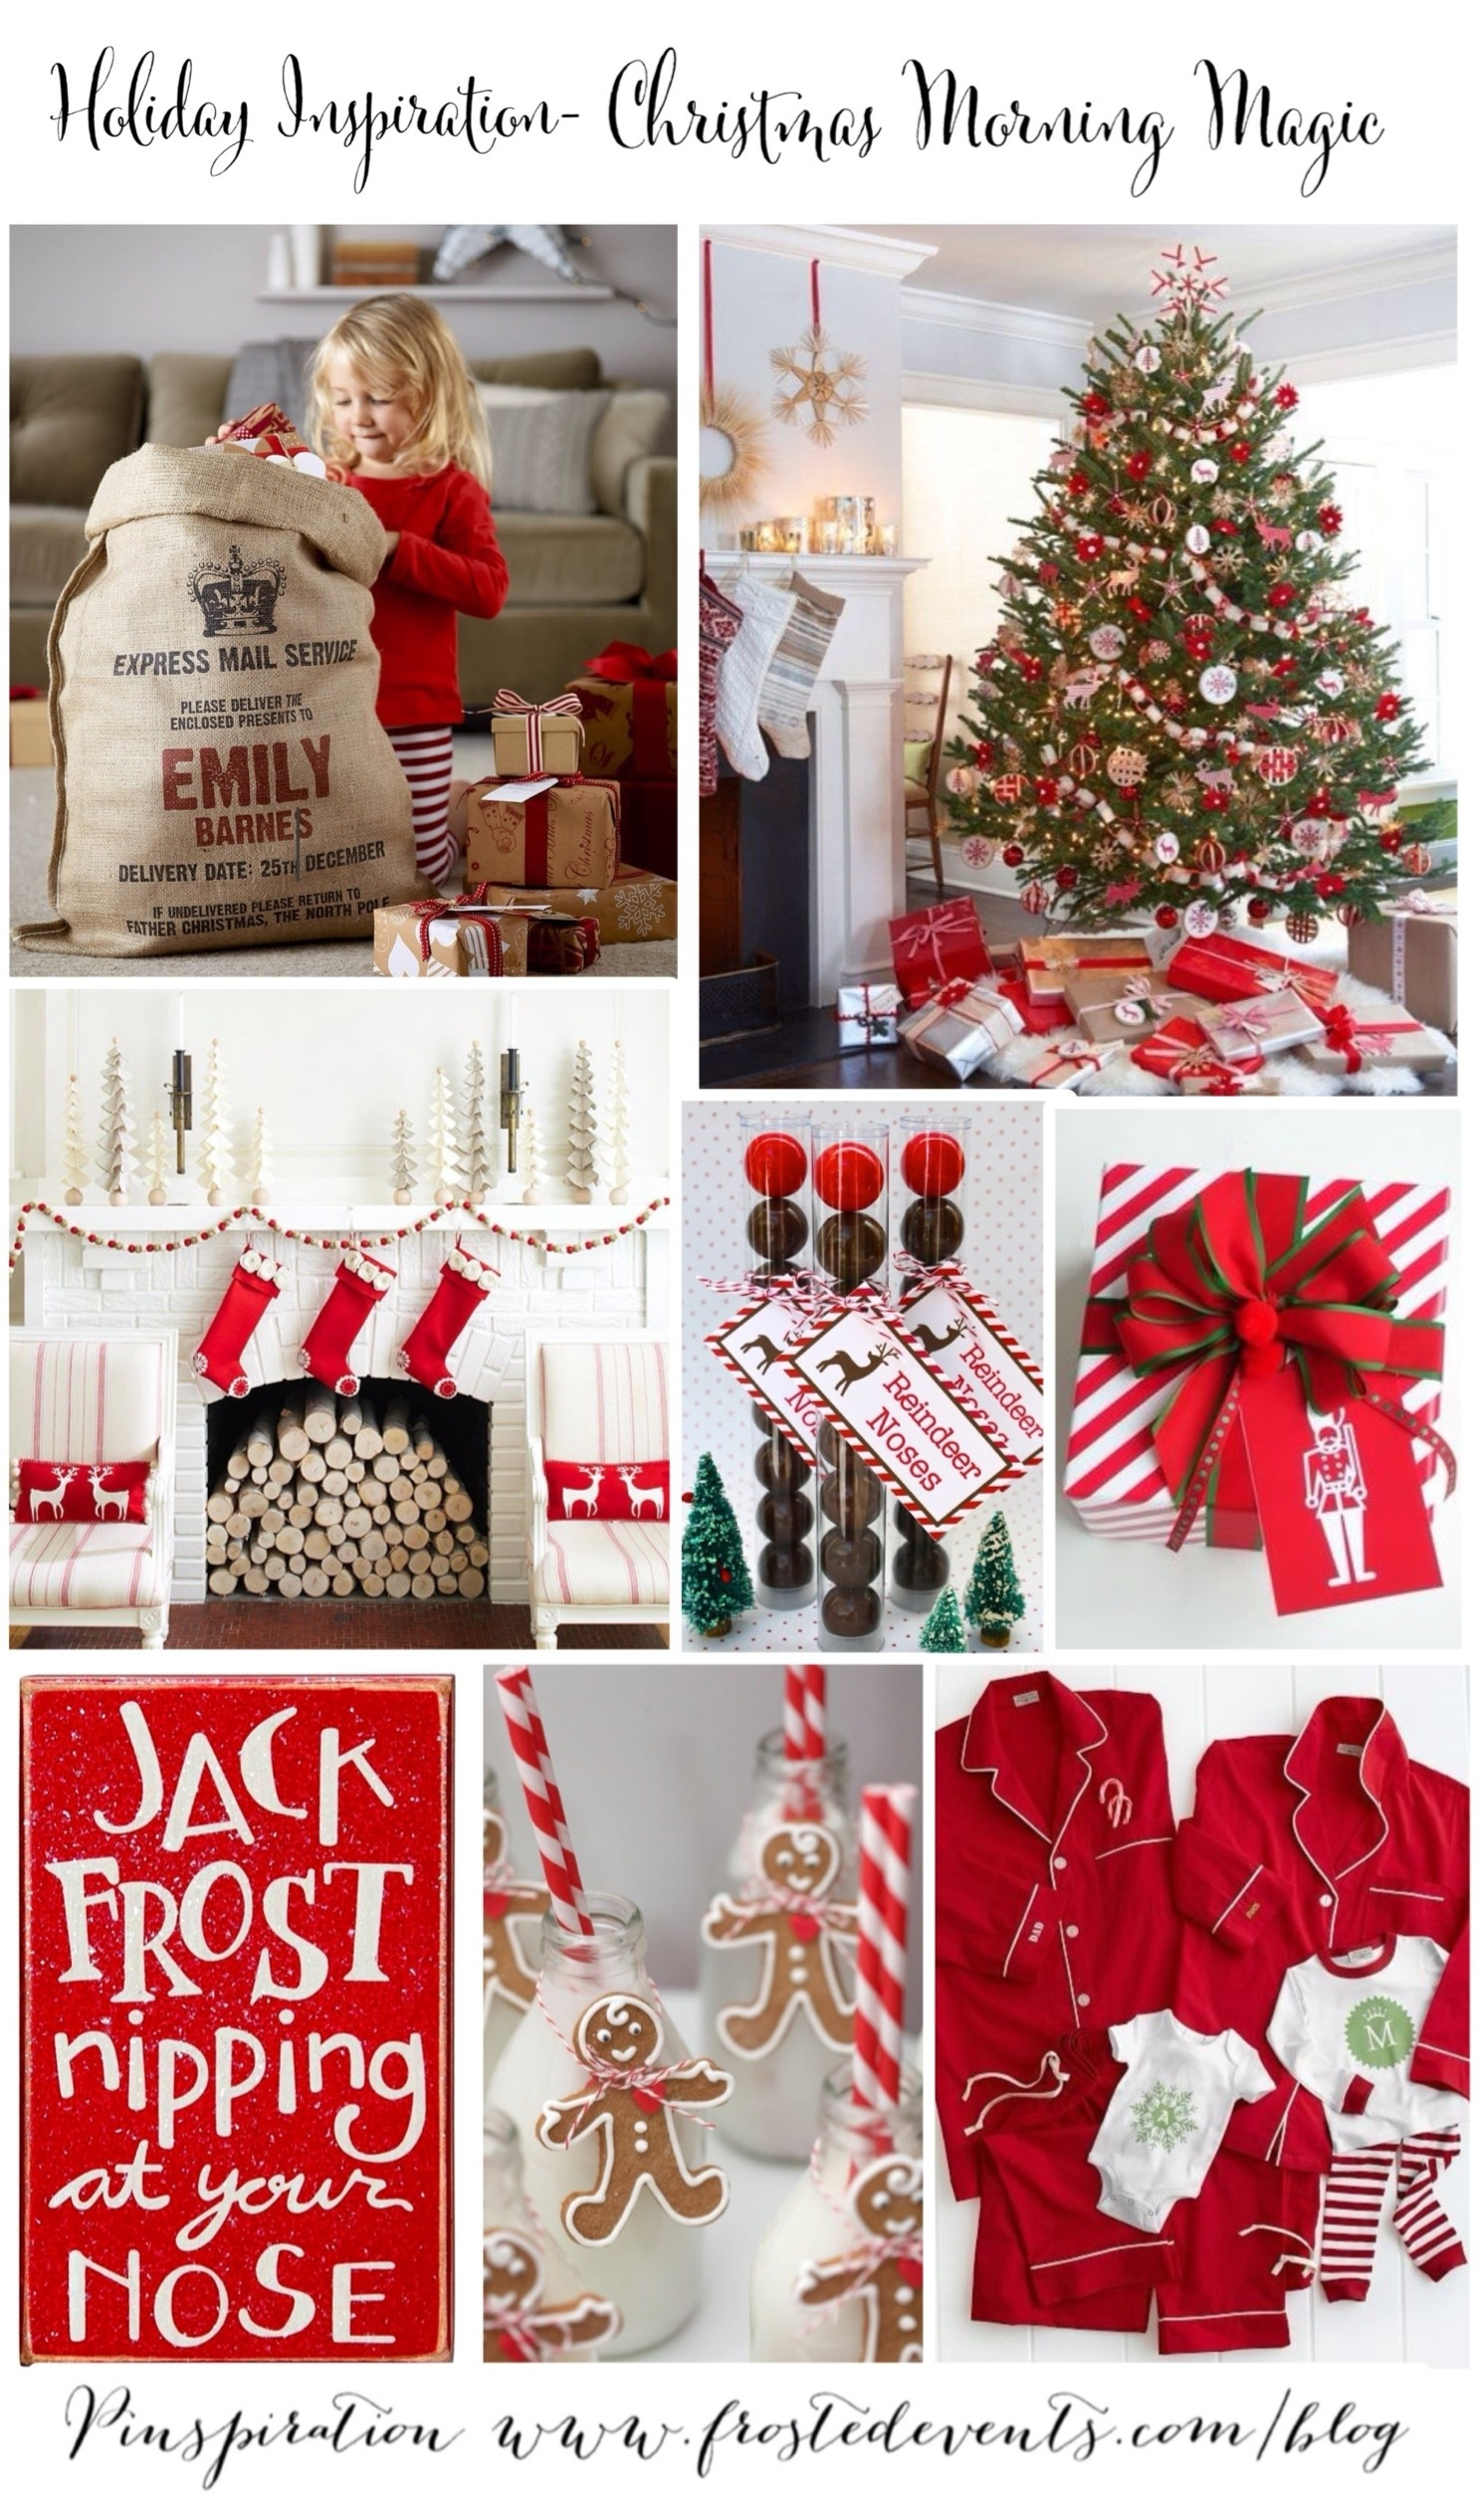 Ideas for Christmas - Christmas Morning Magic- www.frostedevents.com Christmas Ideas & Inspiration